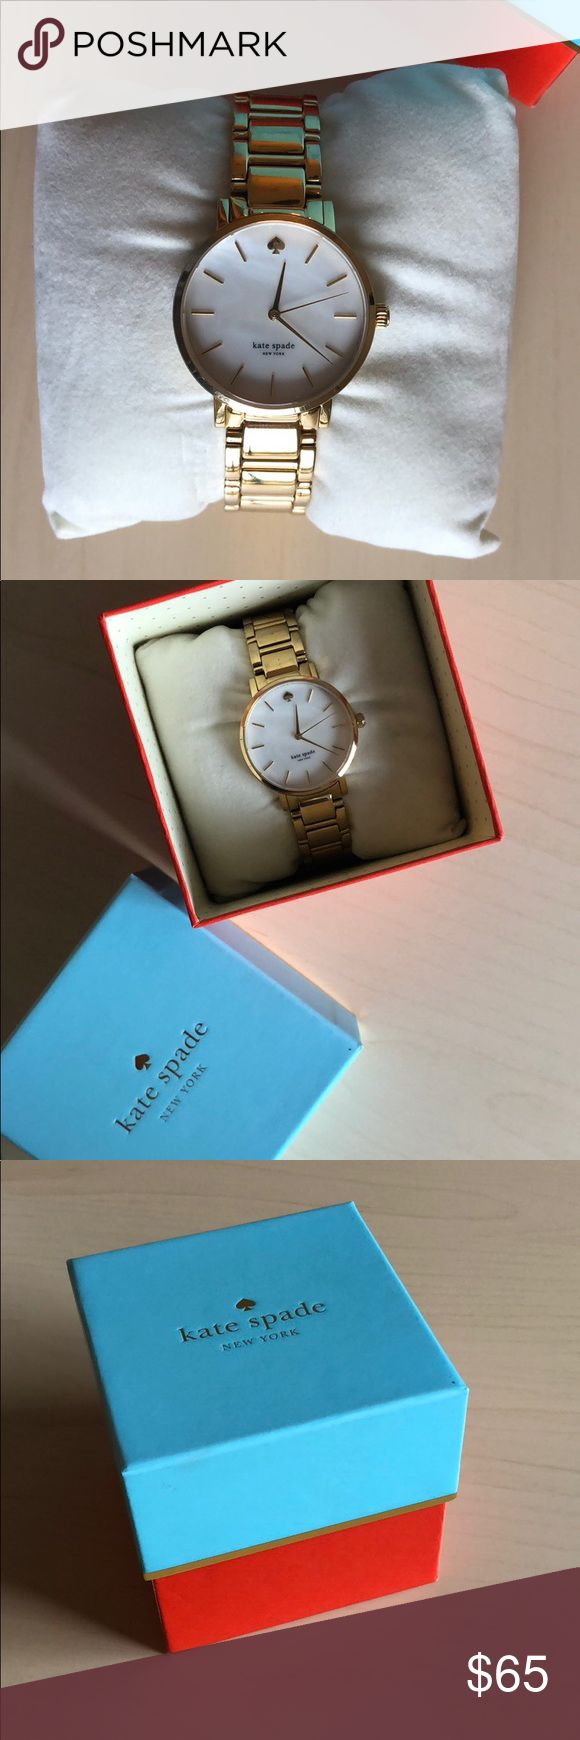 Kate Spade Gold Watch Kate Spade gold watch. Shows wear on the strap but not noticeable when wearing. It's about 4 years old. Included is: watch, cushion, instructions, links that were taken out, travel pouch, and box. kate spade Accessories Watches